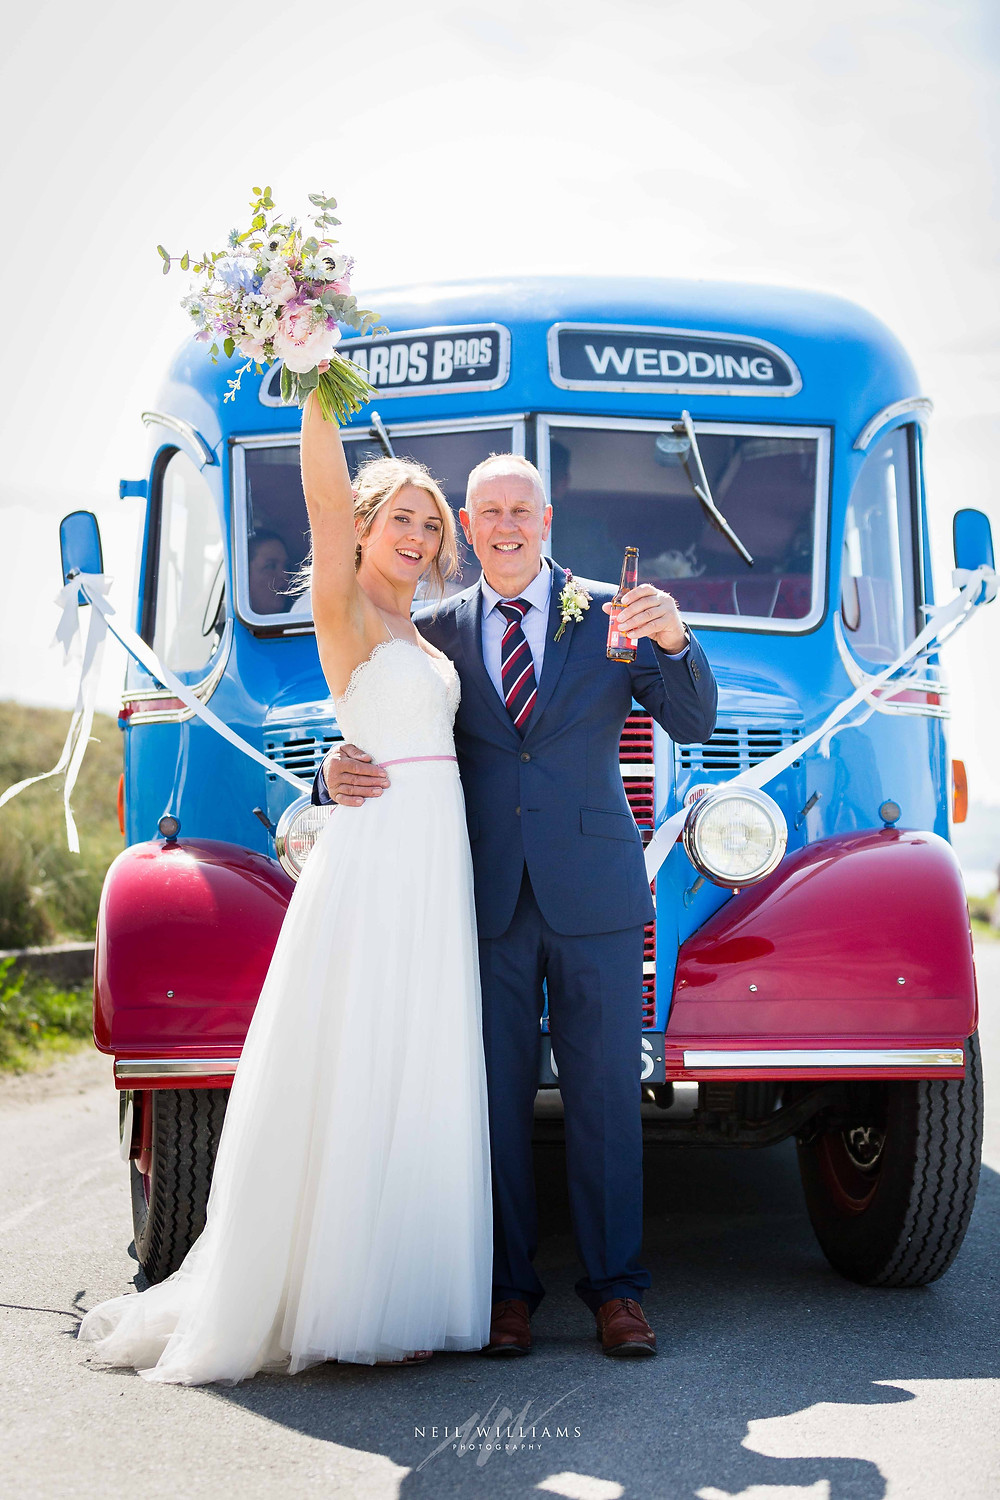 pembrokeshire, wedding, photography, neil, williams, south wales photographer, cardiff, swansea, carmarthen, bristol, cotswolds, llys meddyg, rustic, alternative, boho, vintage bus, wedding transport, richards bros, van kampers